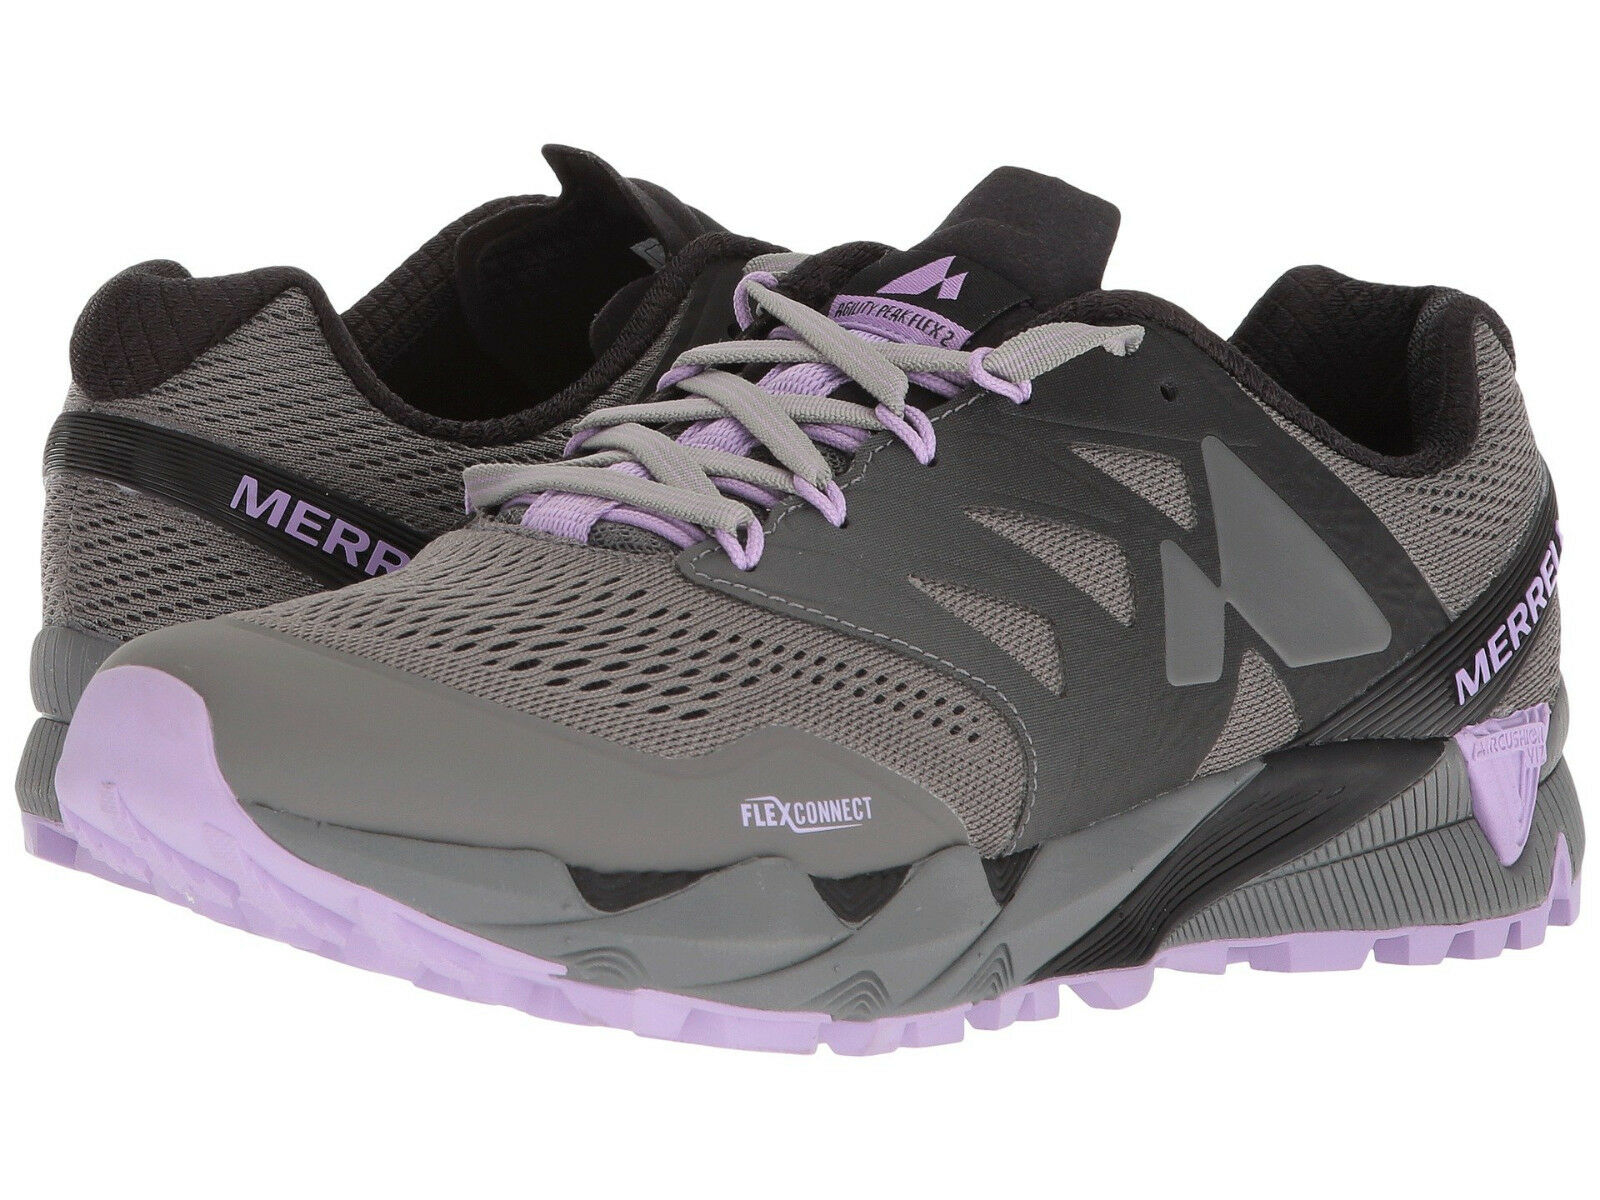 Merrell damen Agility Peak Flex 2 E-Mesh Low Trainers schuhe Trail Fashion